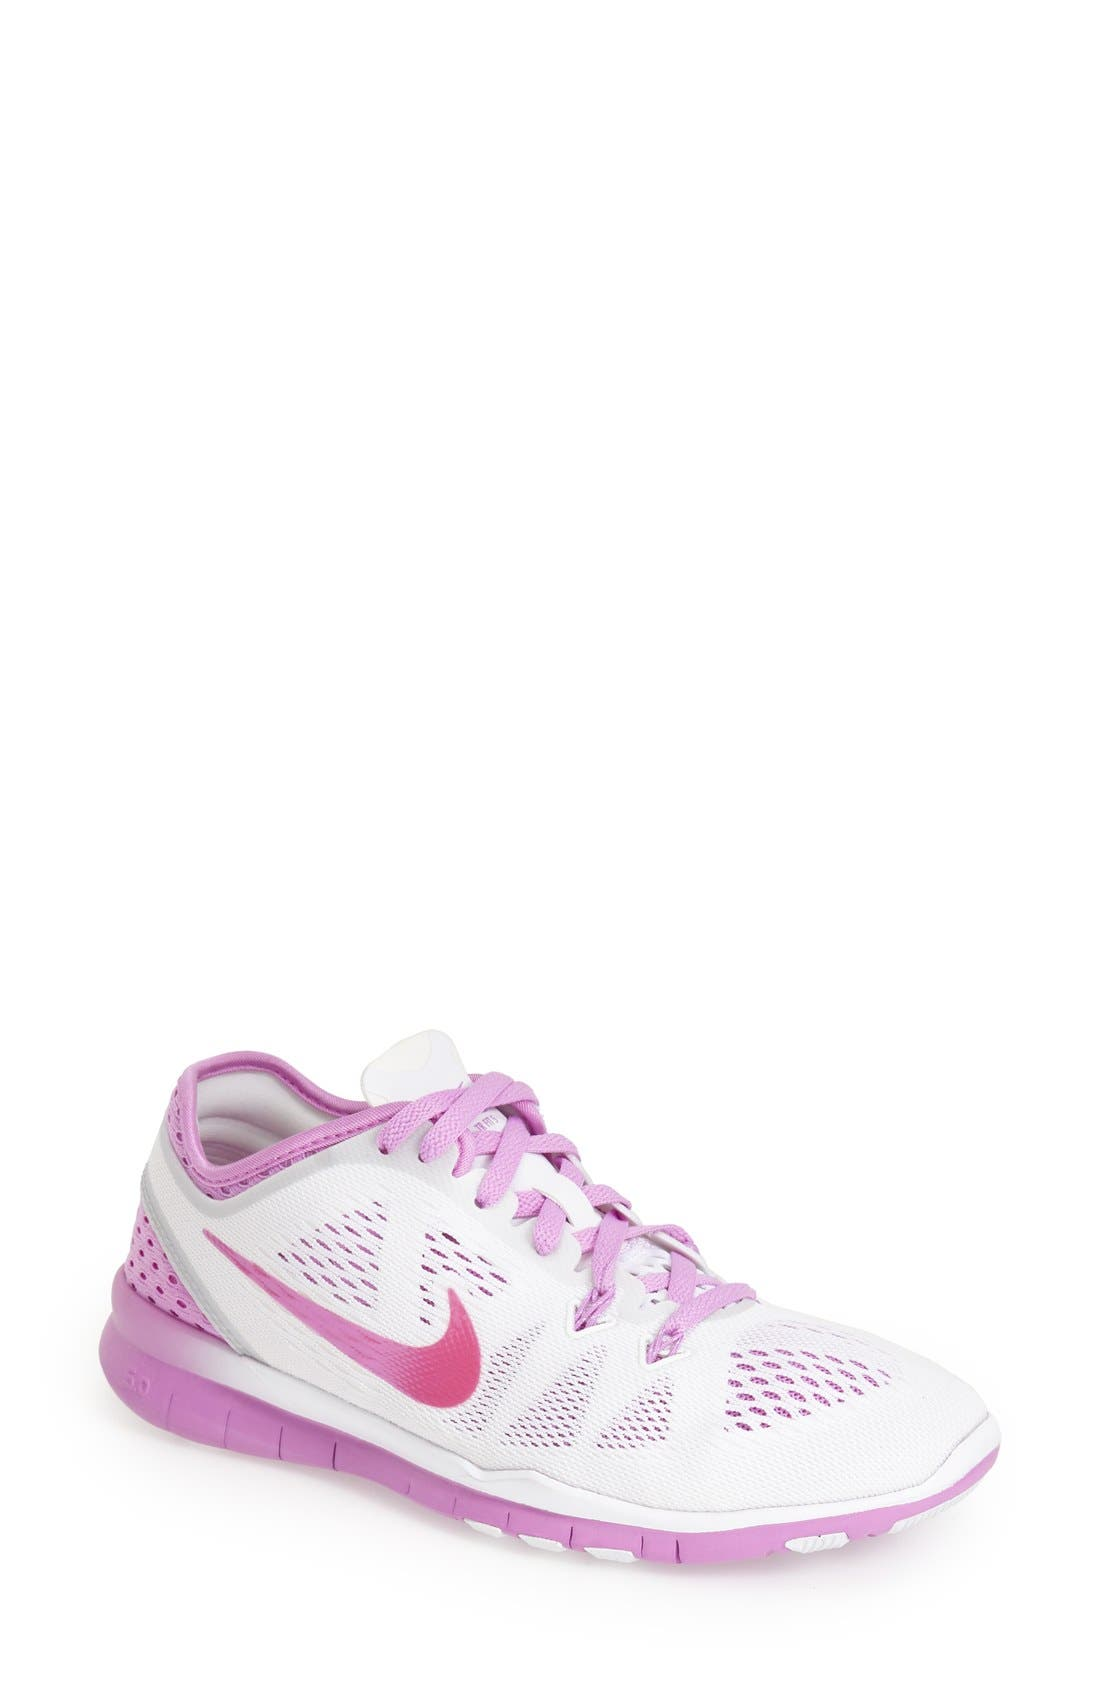 Alternate Image 1 Selected - Nike 'Free 5.0 TR Fit 5 Breathe' Training Shoe (Women)